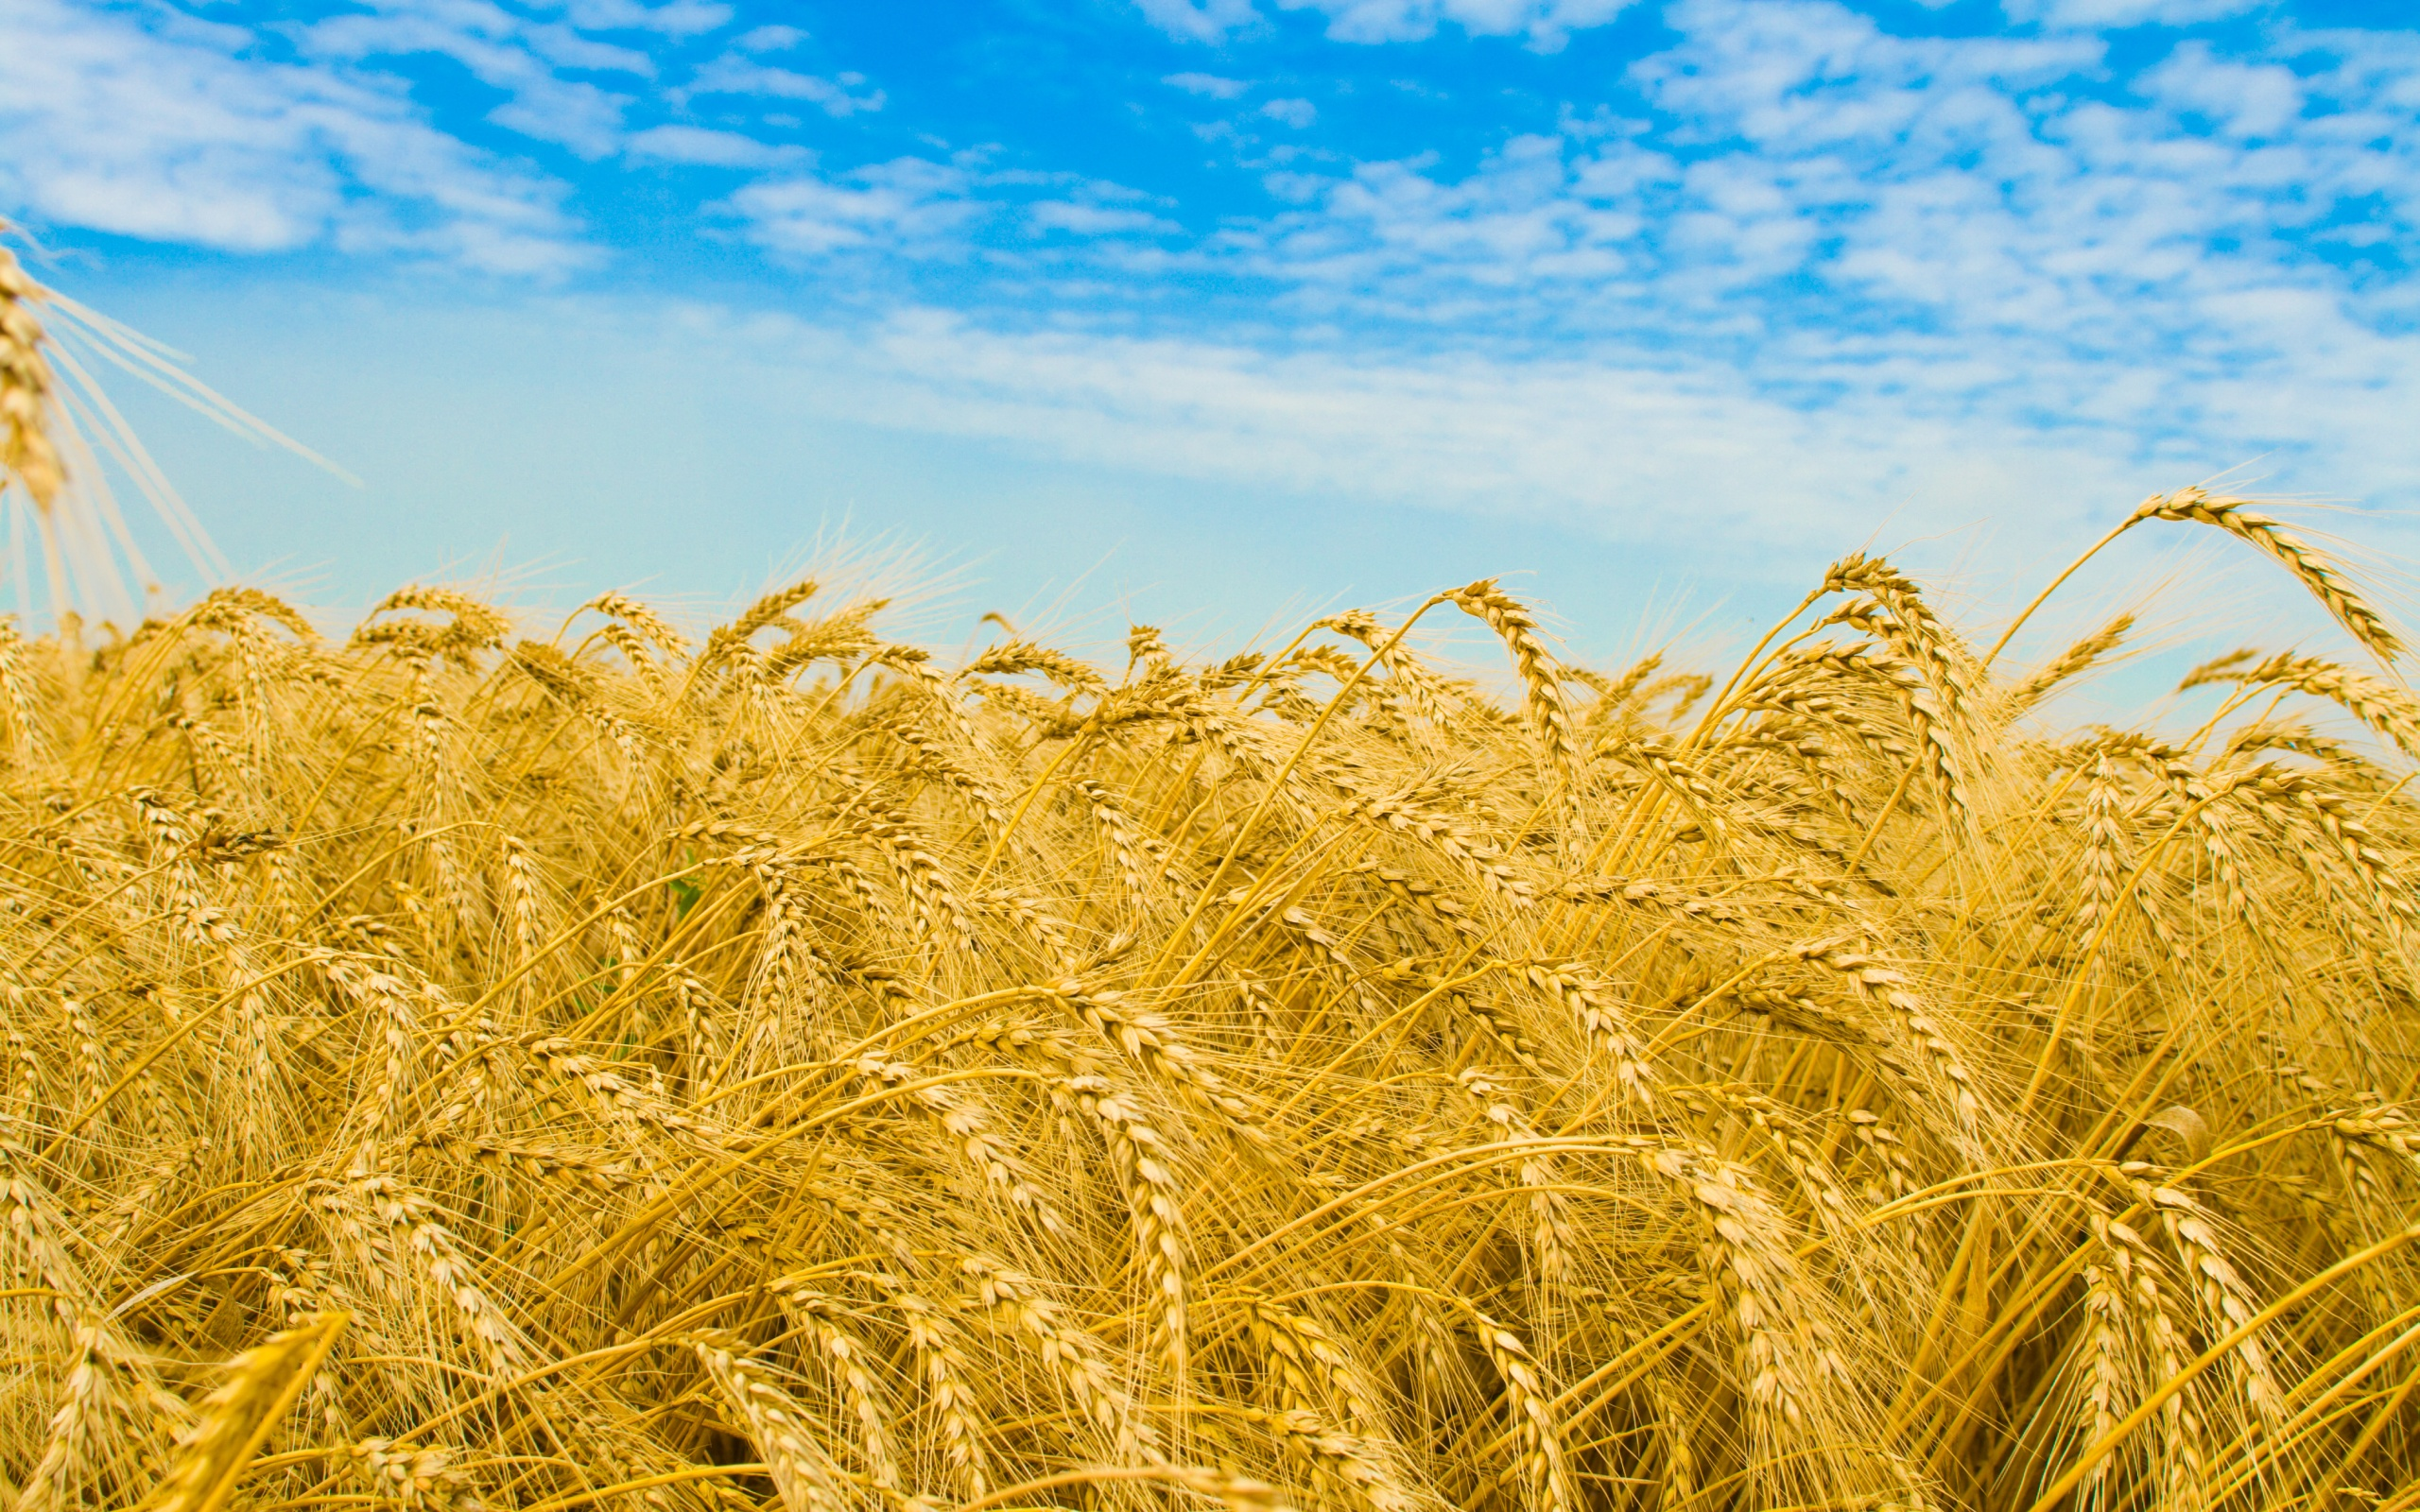 Colourful Iphone View Hd Nature Wallpapers Wheat: Wheat Field Stock Photos